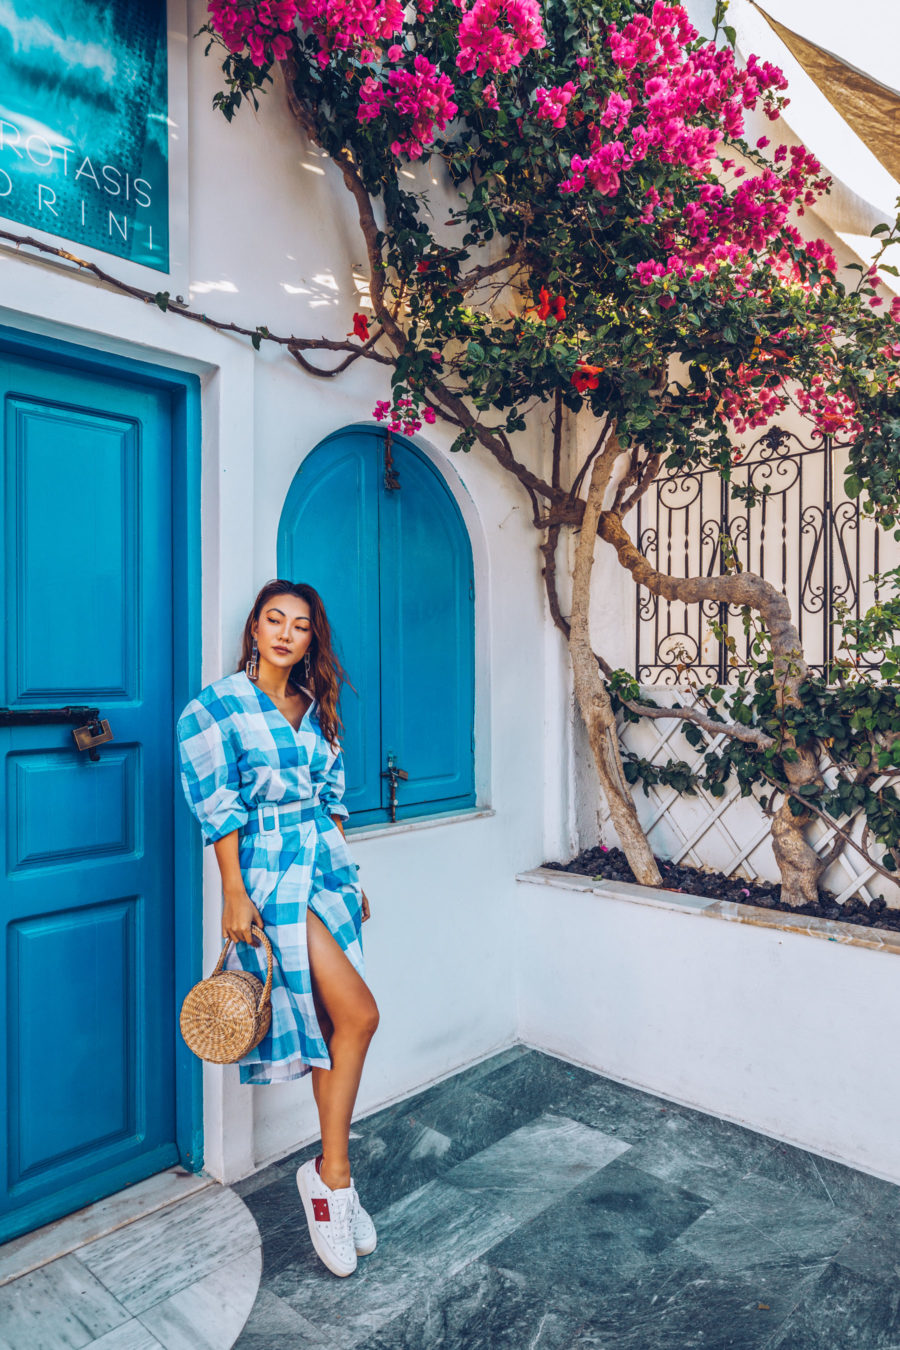 Shopbop Sale Alert - The Best Spring and Summer Items To Buy, Gingham Dresses, Travel Style, Straw Bag Outfit, Greece Style, Easy Dresses for Travel, Jessica Wang // NotJessFashion.com